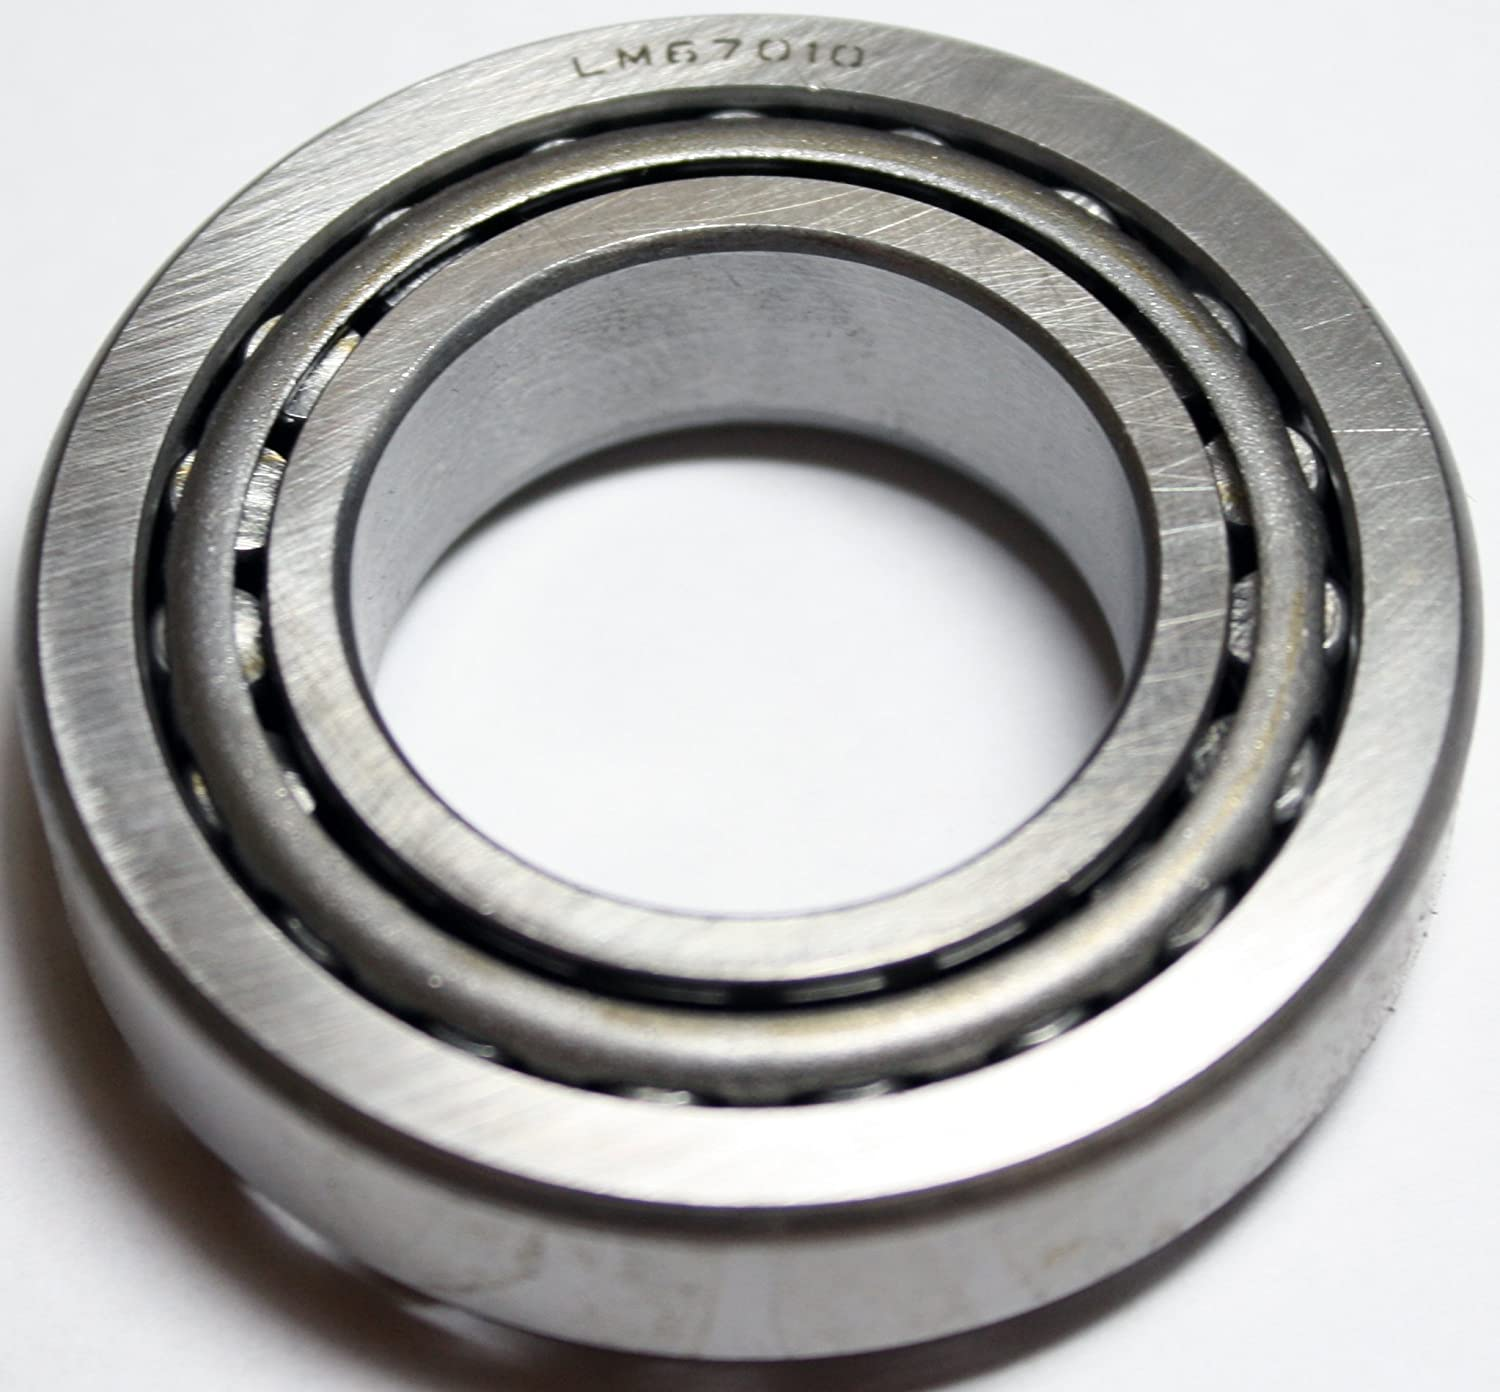 LM67010 Bearing Cup